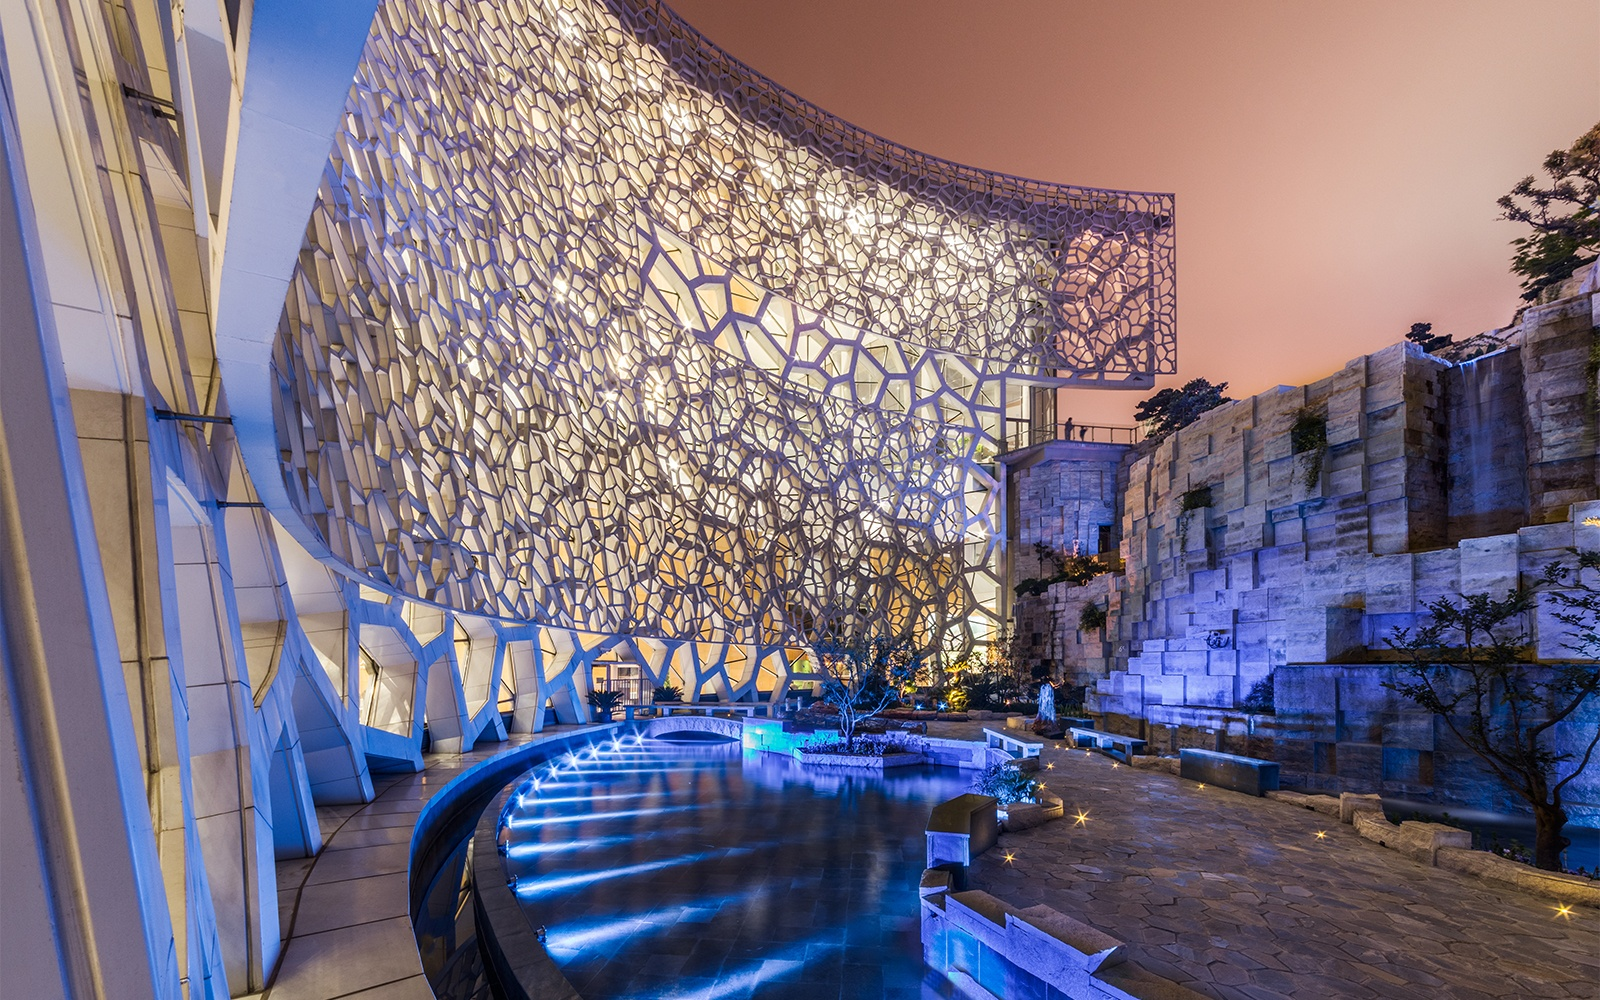 China: Shanghai Natural History Museum